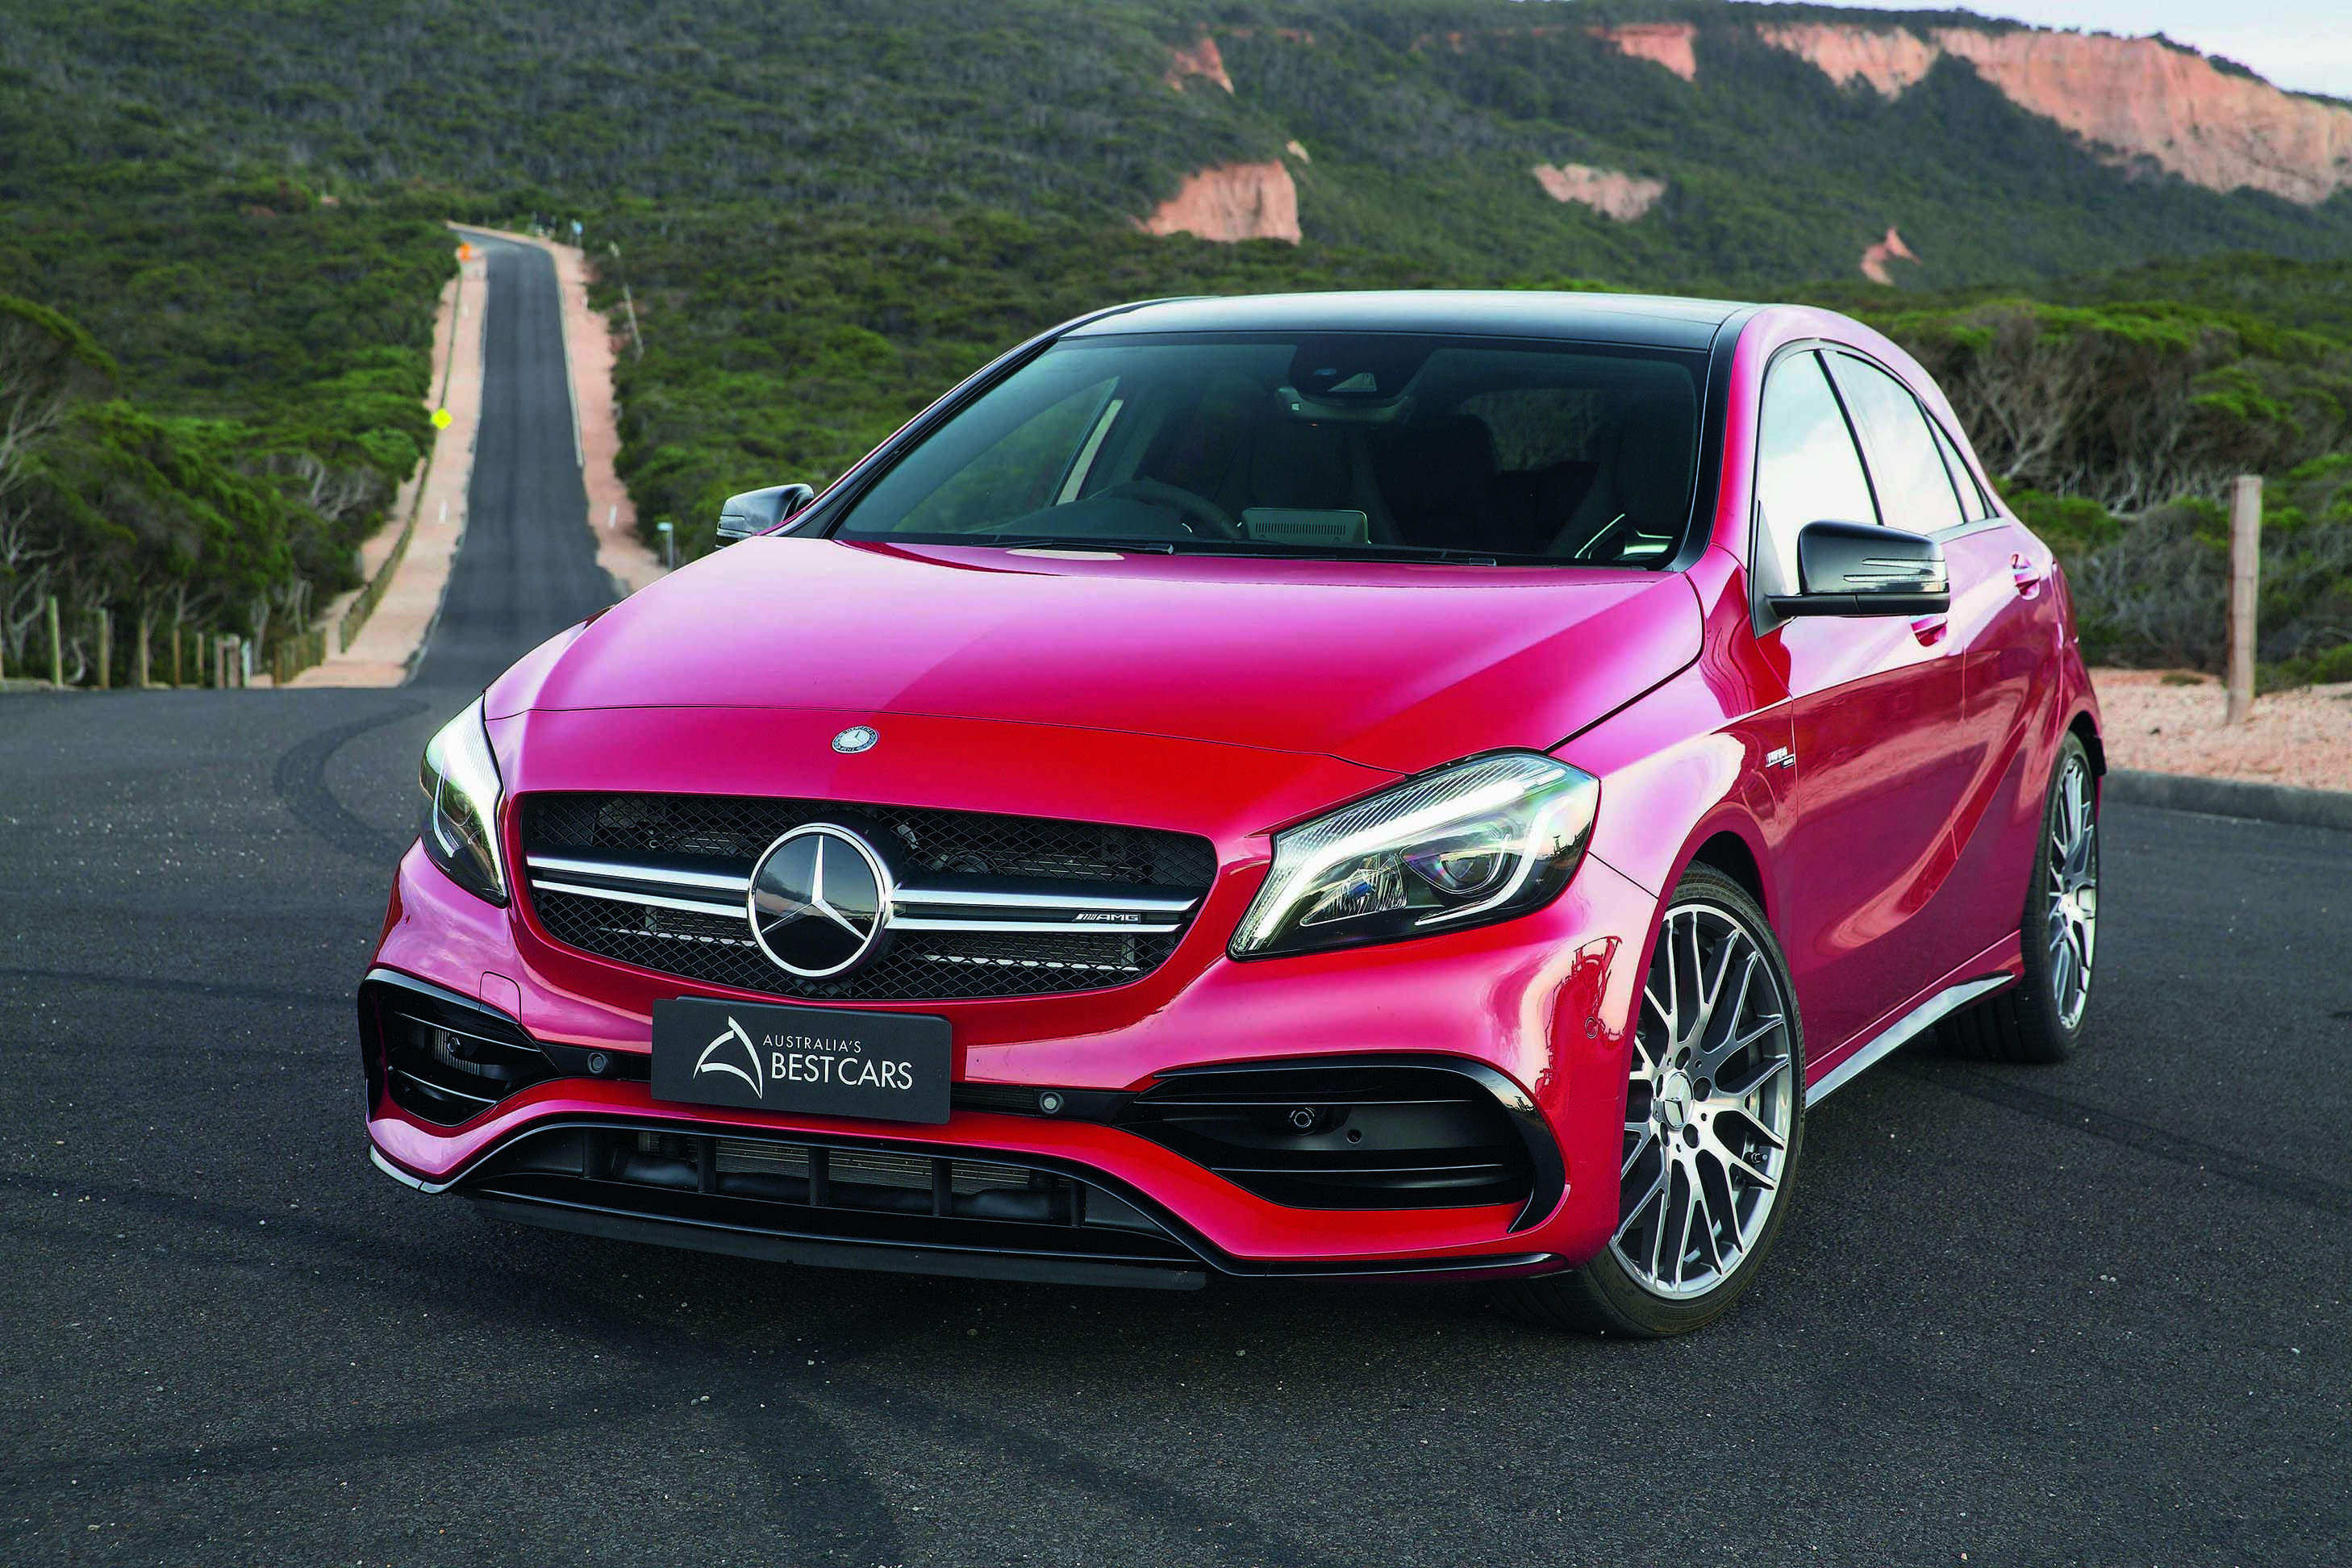 Amazing Australiau0027s Best Cars 2015/2016 Awards. Winner   Best Sports Car $50 $100K  Winner   Mercedes Benz A 45 AMG. RoyalAuto March, 2016. Australiau0027s Best  Cars ...